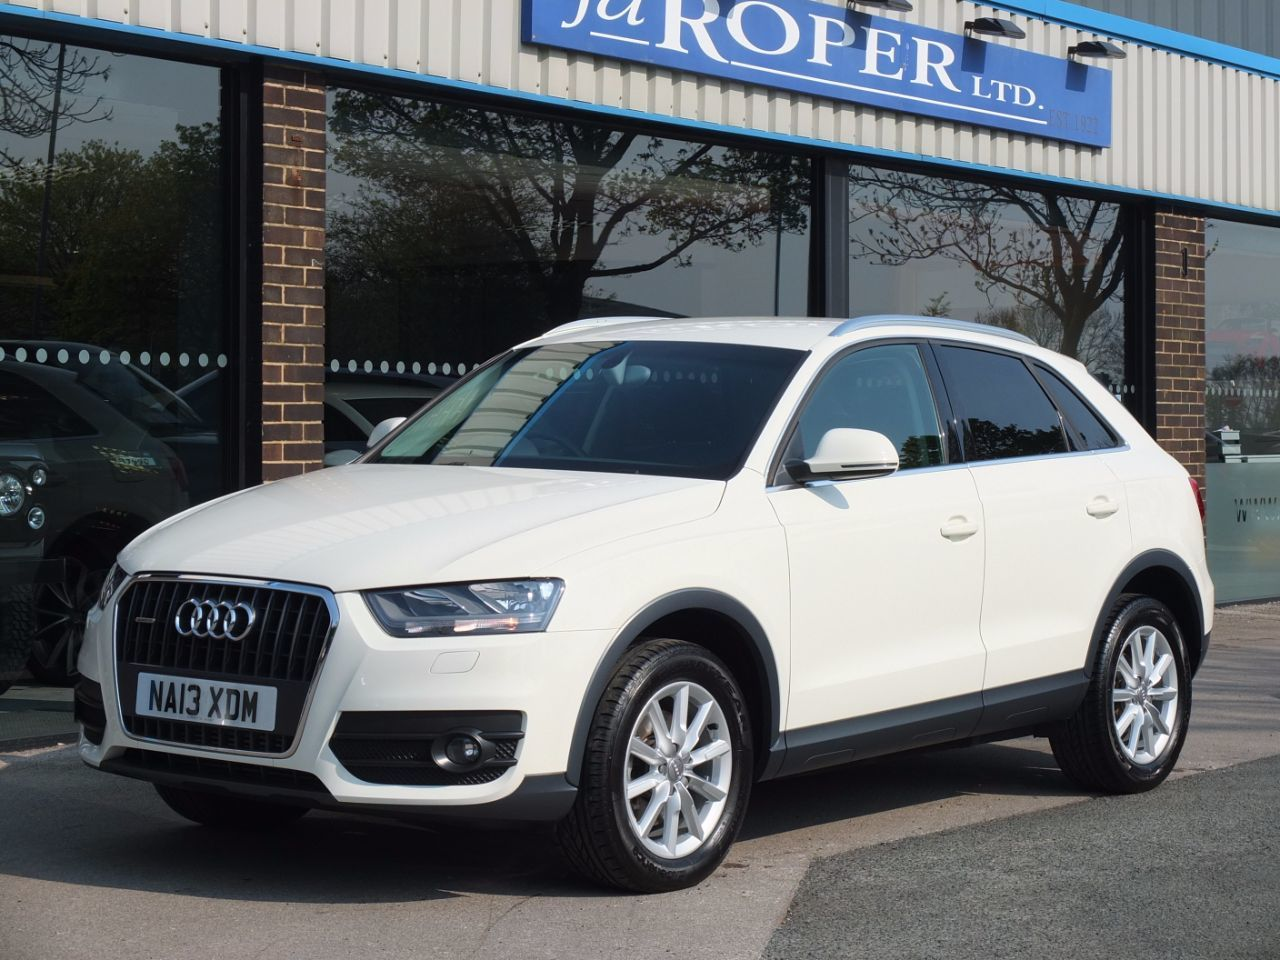 Audi Q3 2.0 TDI Quattro SE 140ps Navigation Estate Diesel Amalfi WhiteAudi Q3 2.0 TDI Quattro SE 140ps Navigation Estate Diesel Amalfi White at fa Roper Ltd Bradford